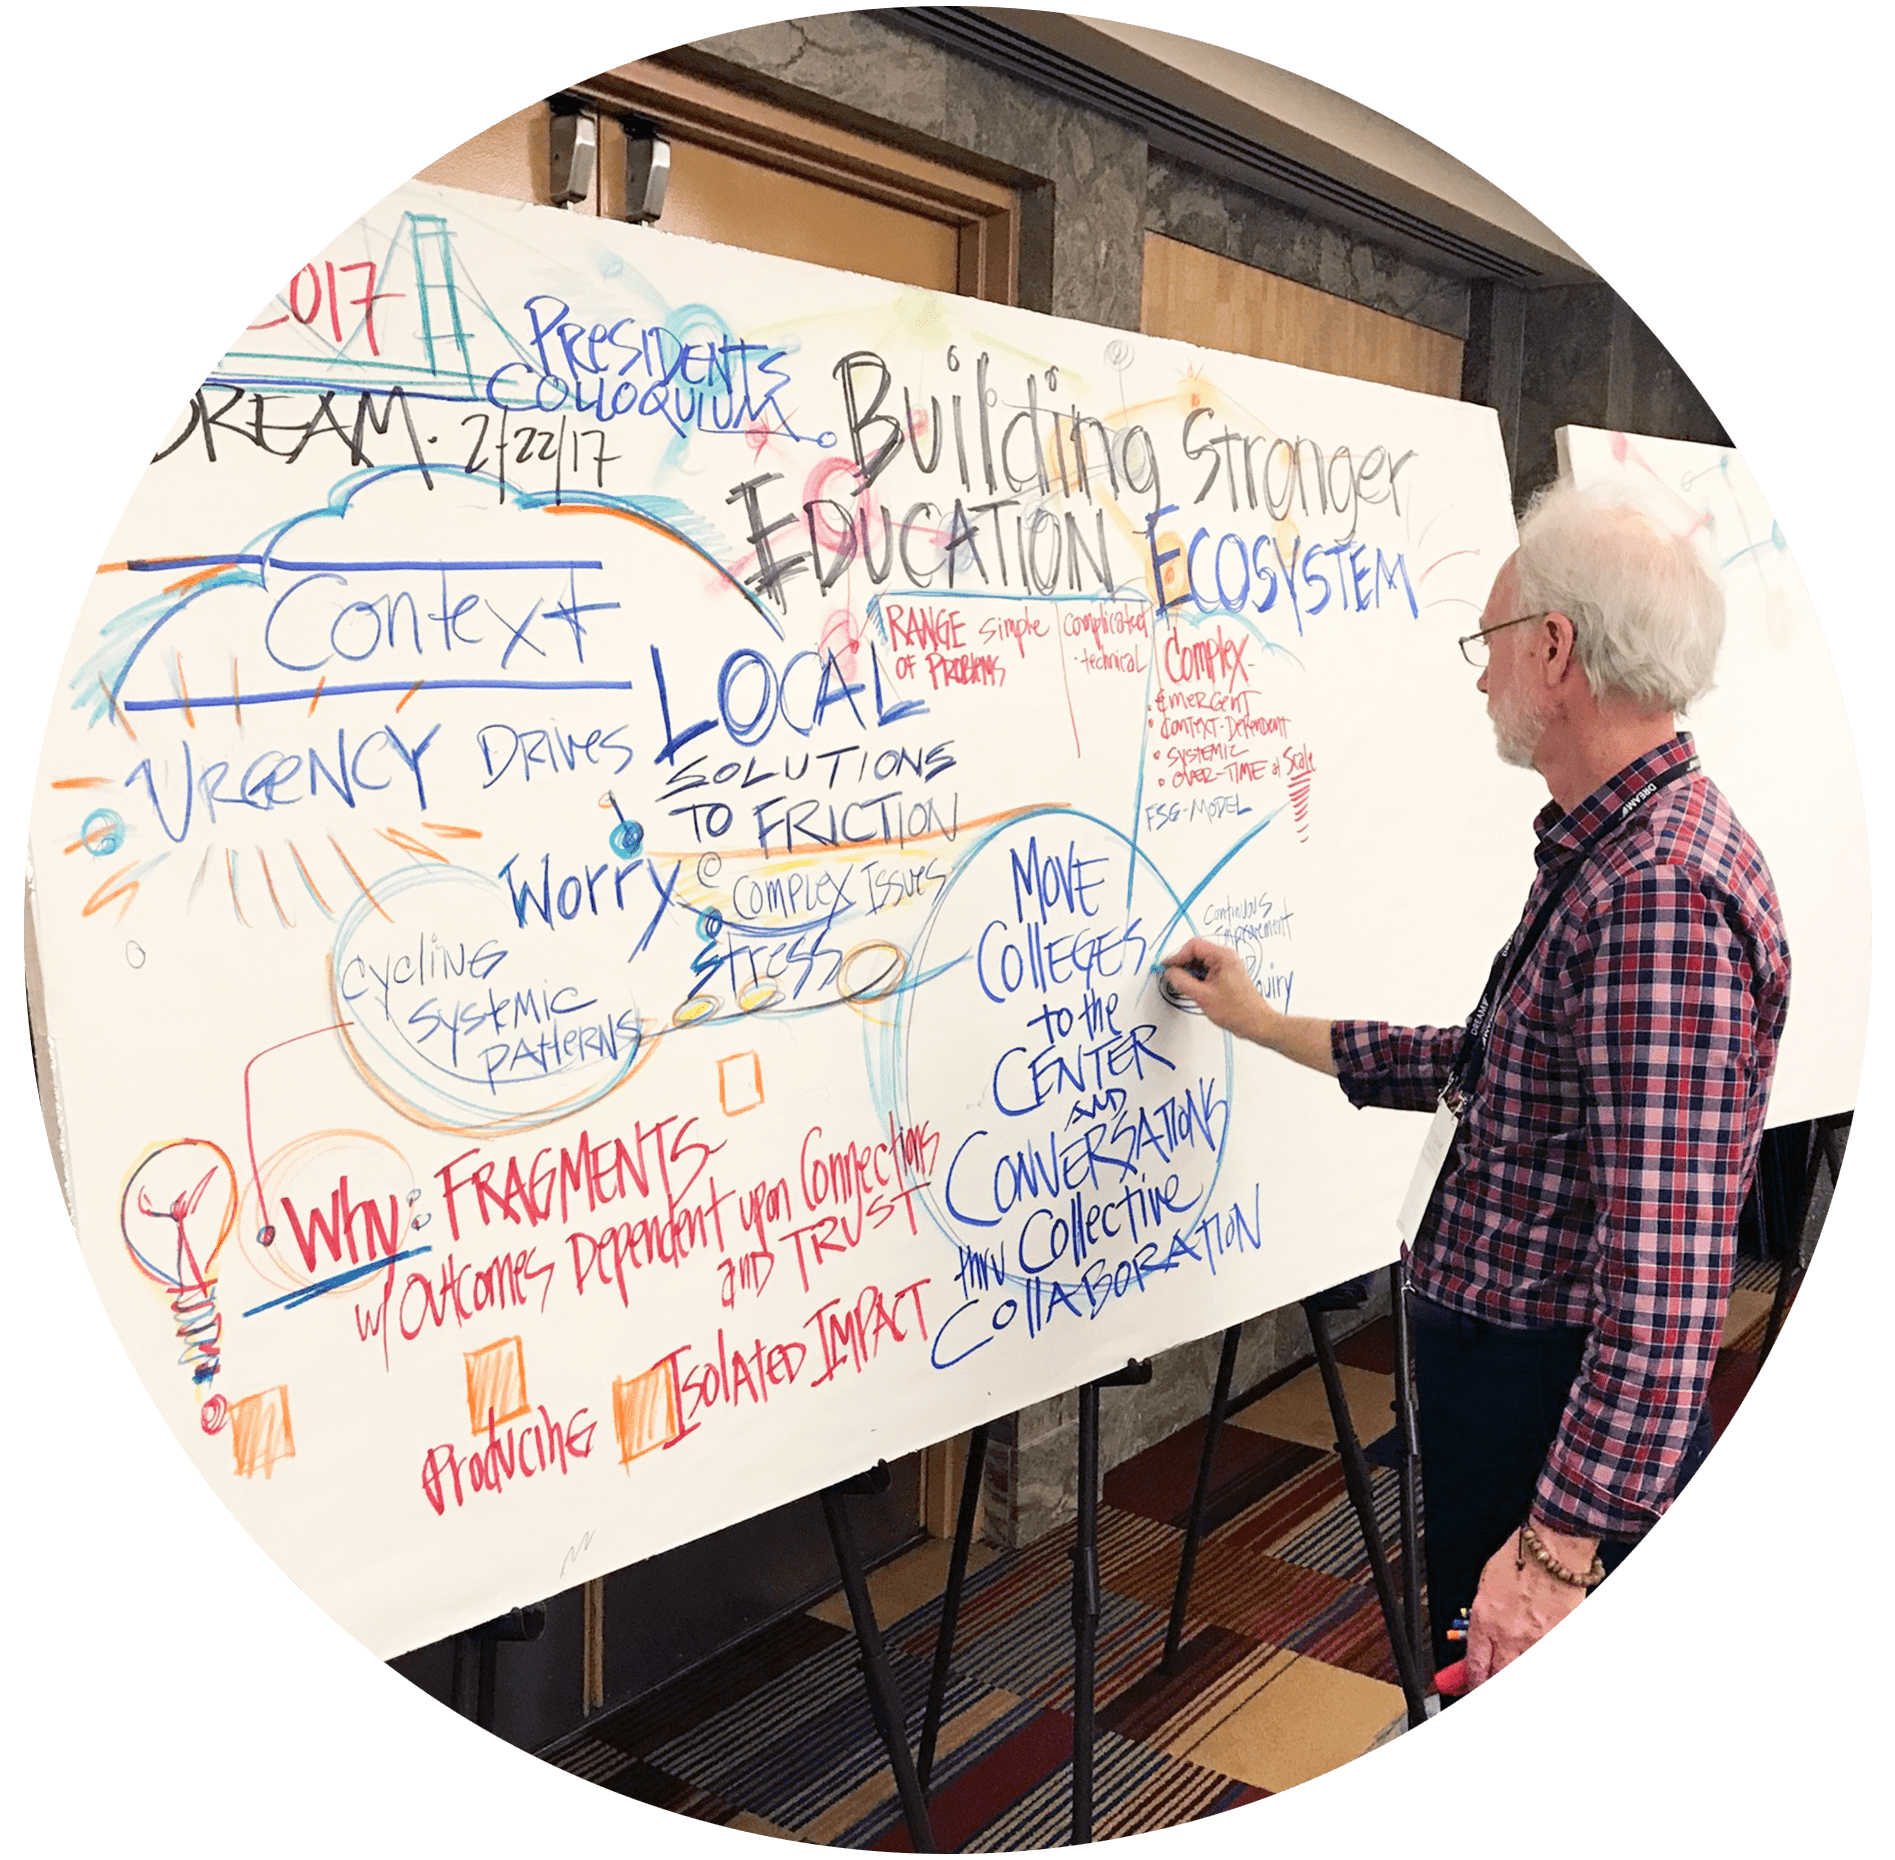 Ken Hubbell doing a live, visual capture of key meeting concepts.